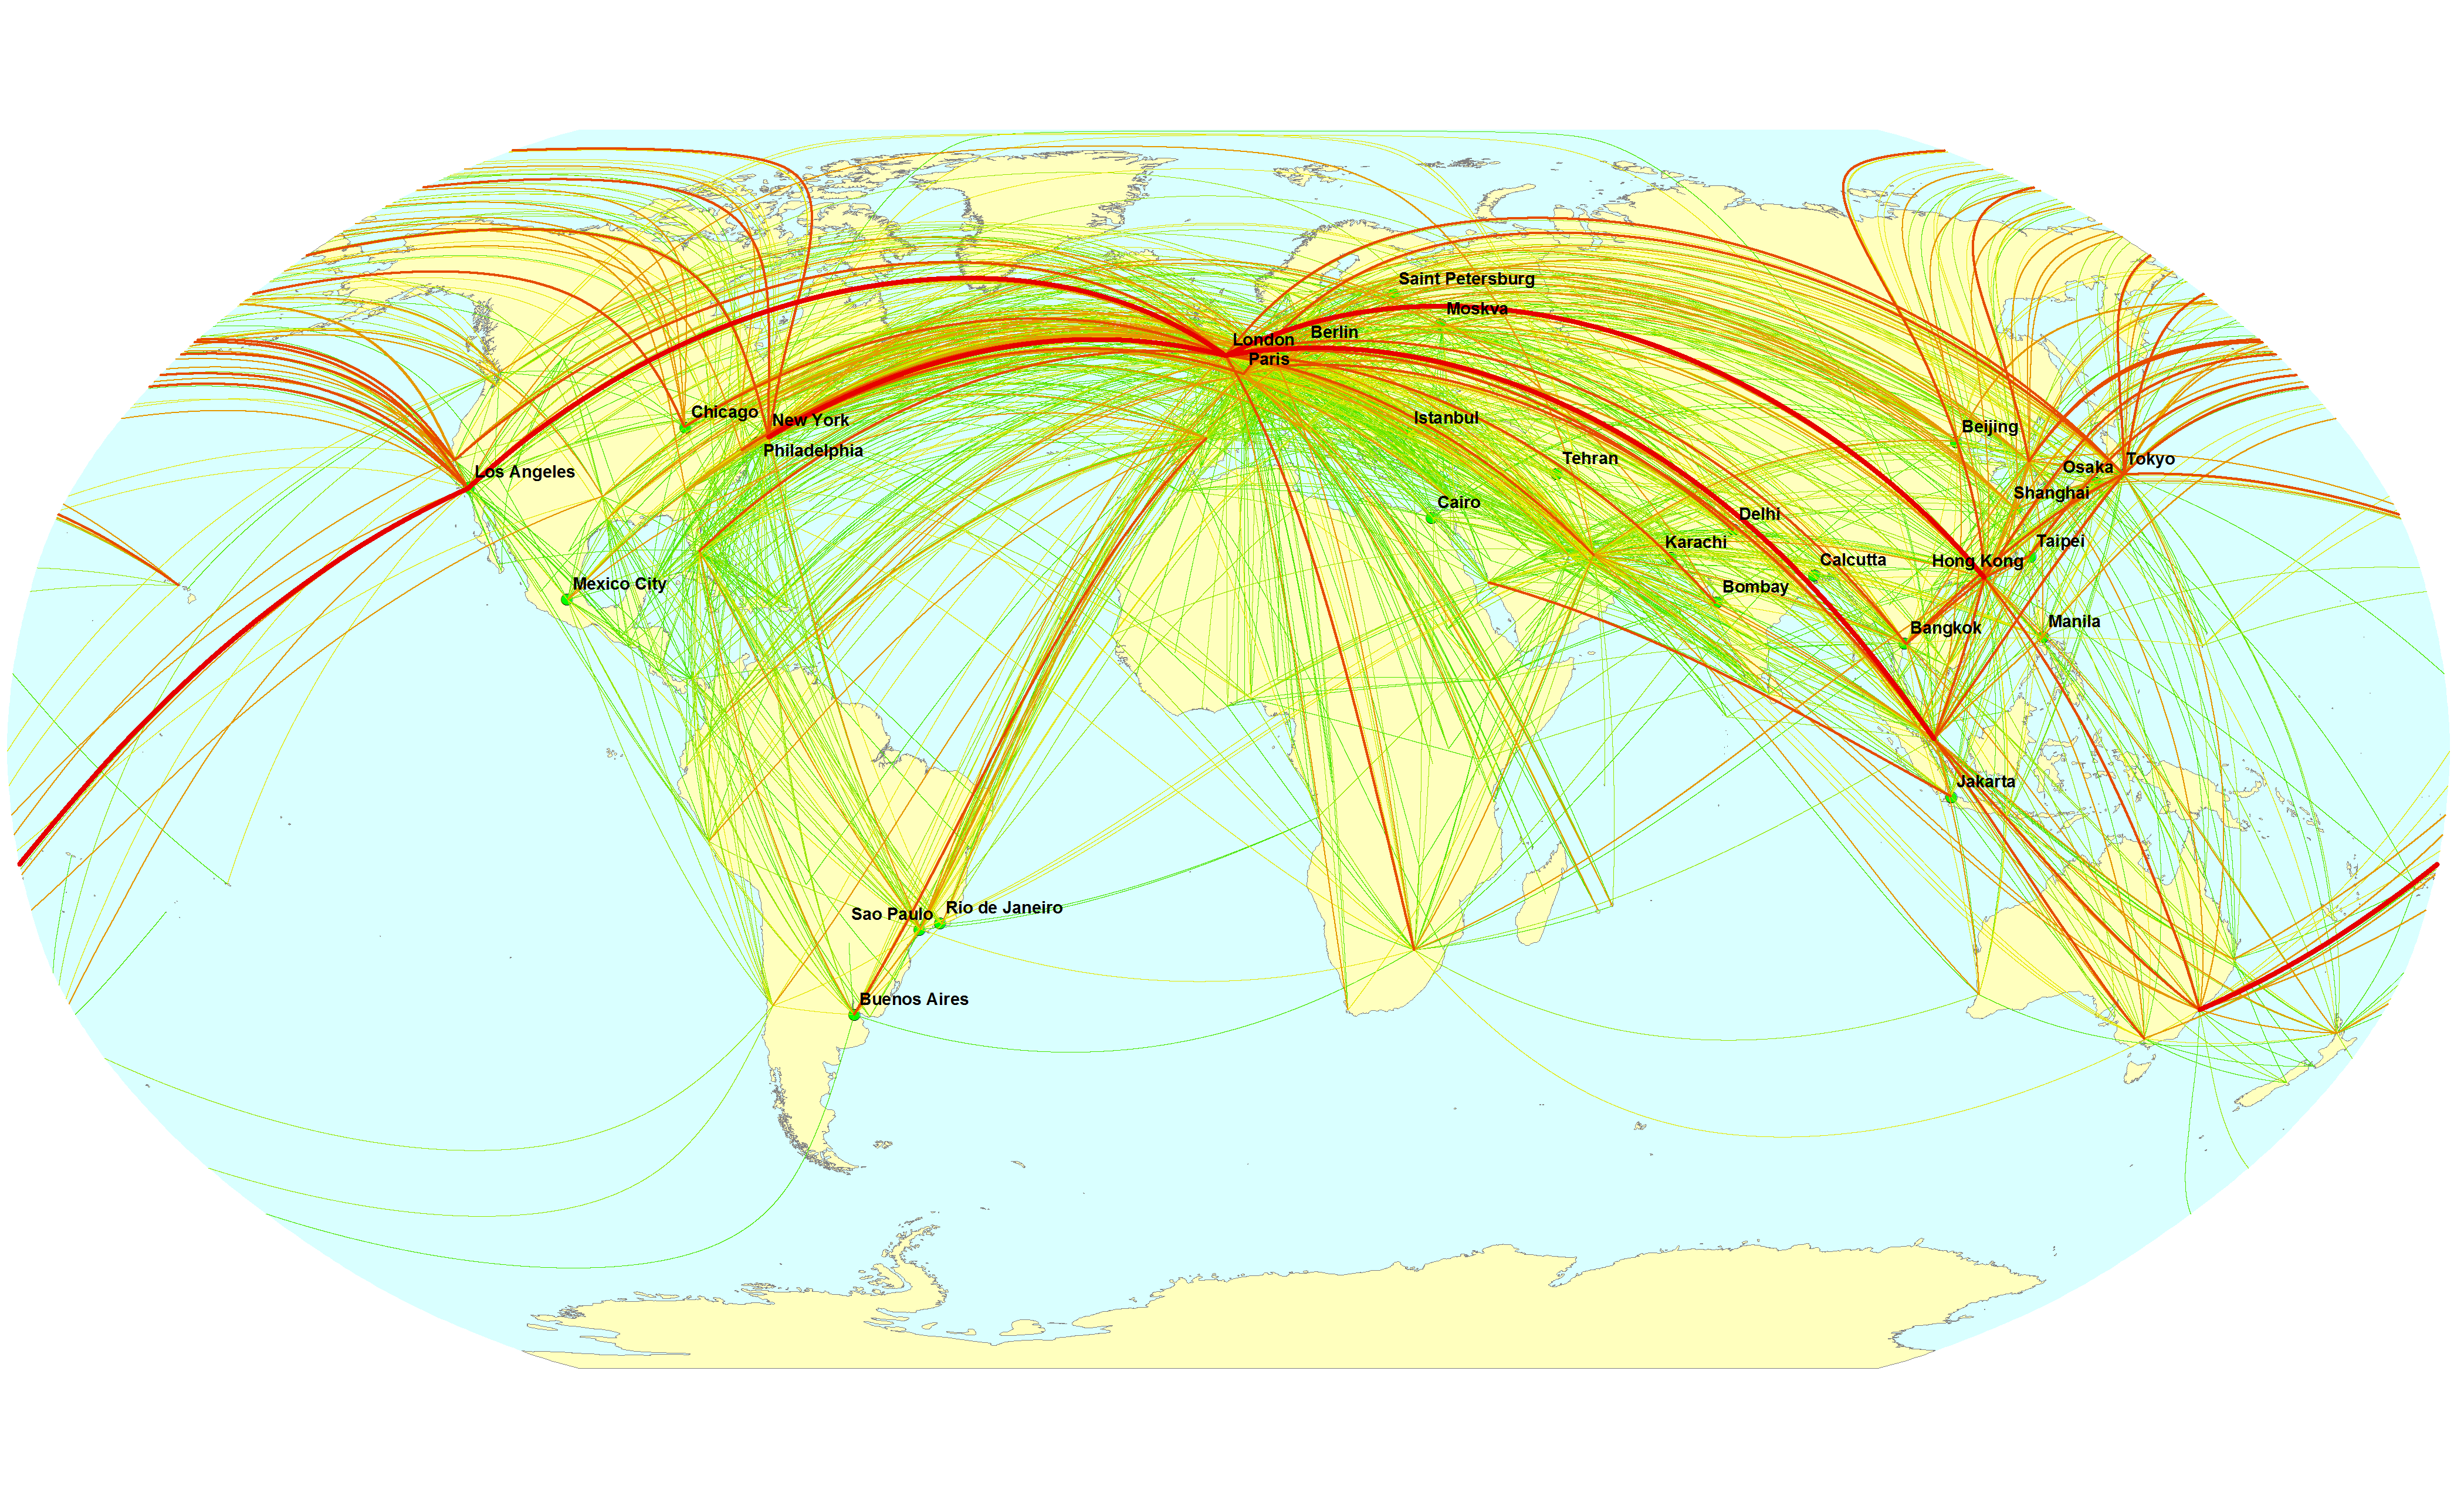 an analysis of the international trade routes Old world trade routes (owtrad) project (formerly old world traditional trade routes (owtrad) project) dr t matthew ciolek,  research school of pacific and asian studies,.